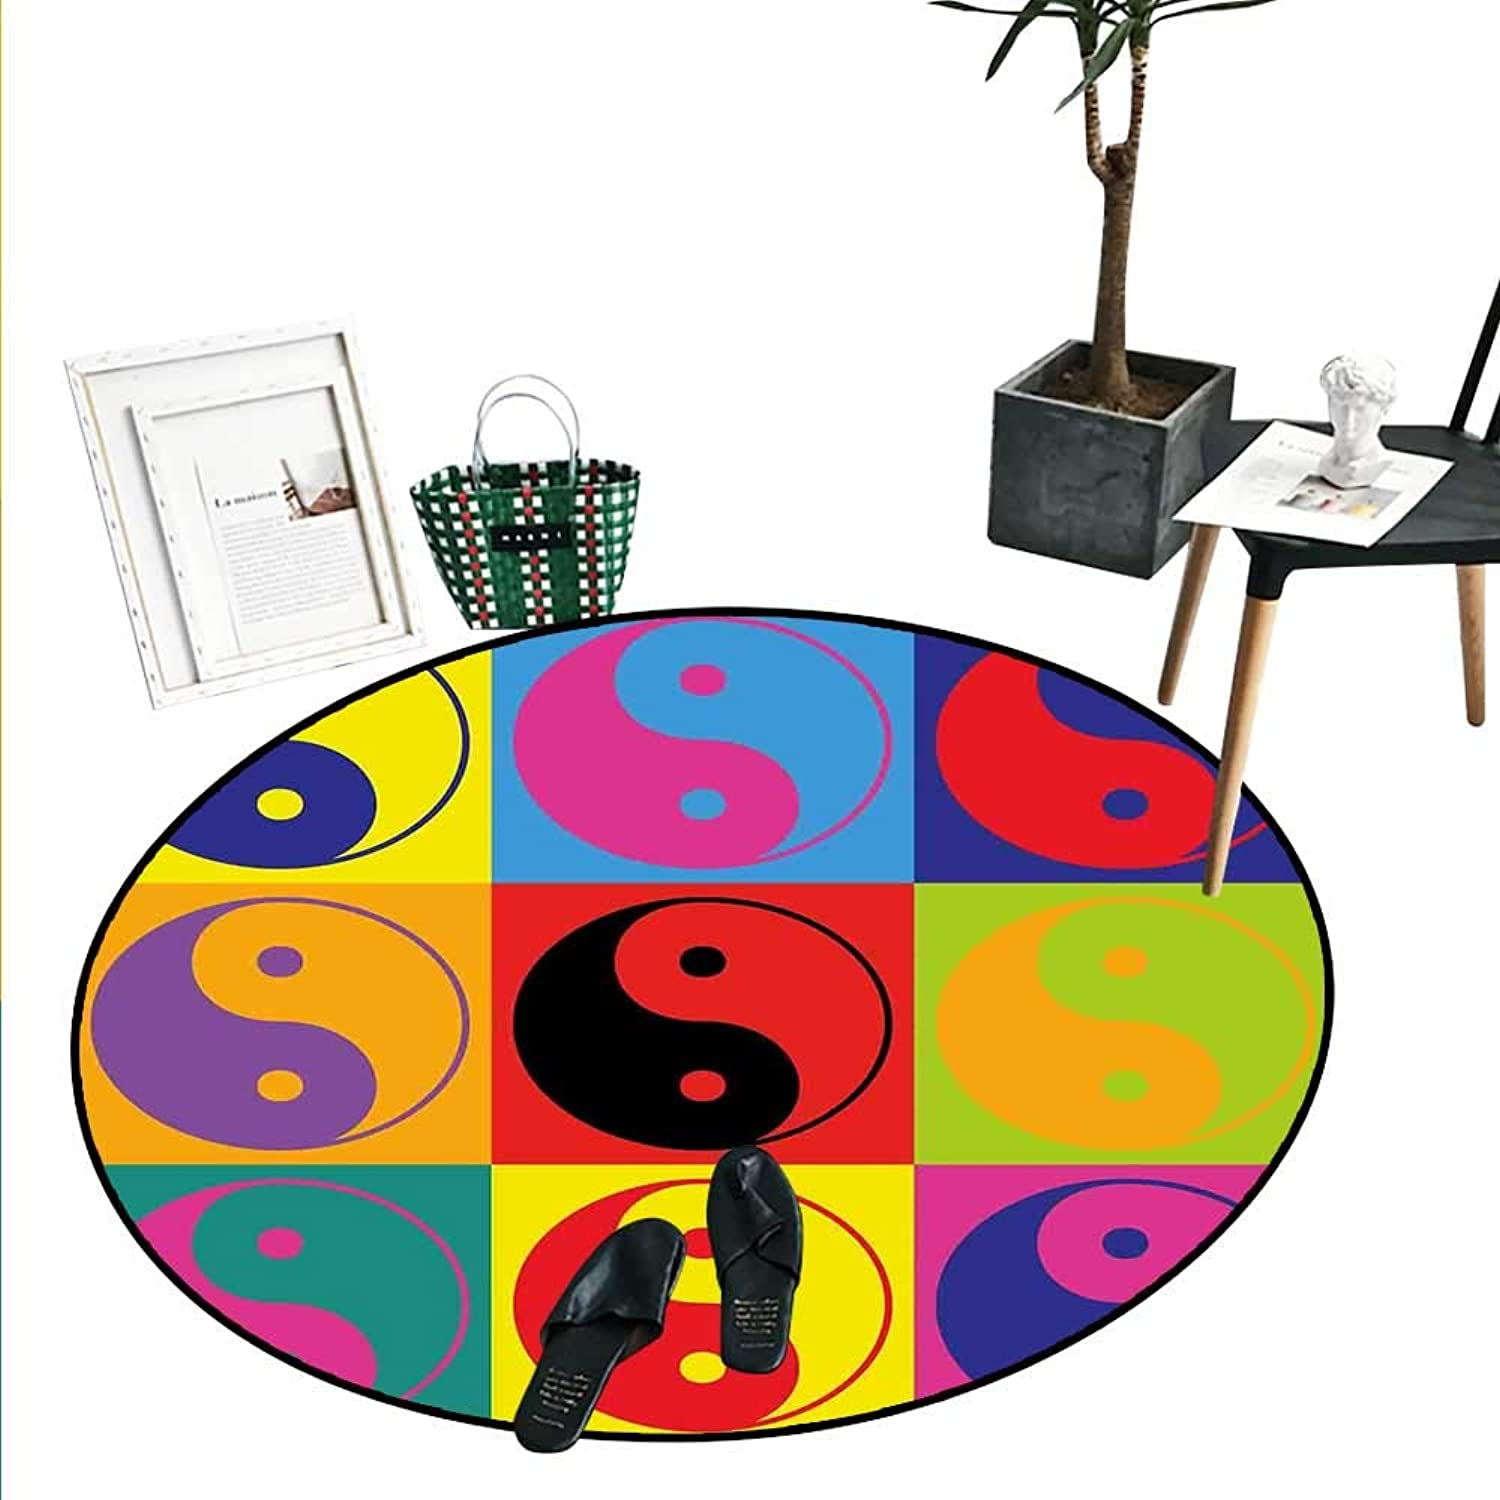 Ying Yang Print Area Rug Pop Art Design Yin Yang Signs Hippie Style Eastern Asian Peace Balance Theme Living Dining Room Bedroom Hallway Office Carpet (3'3  Diameter) Multicolor